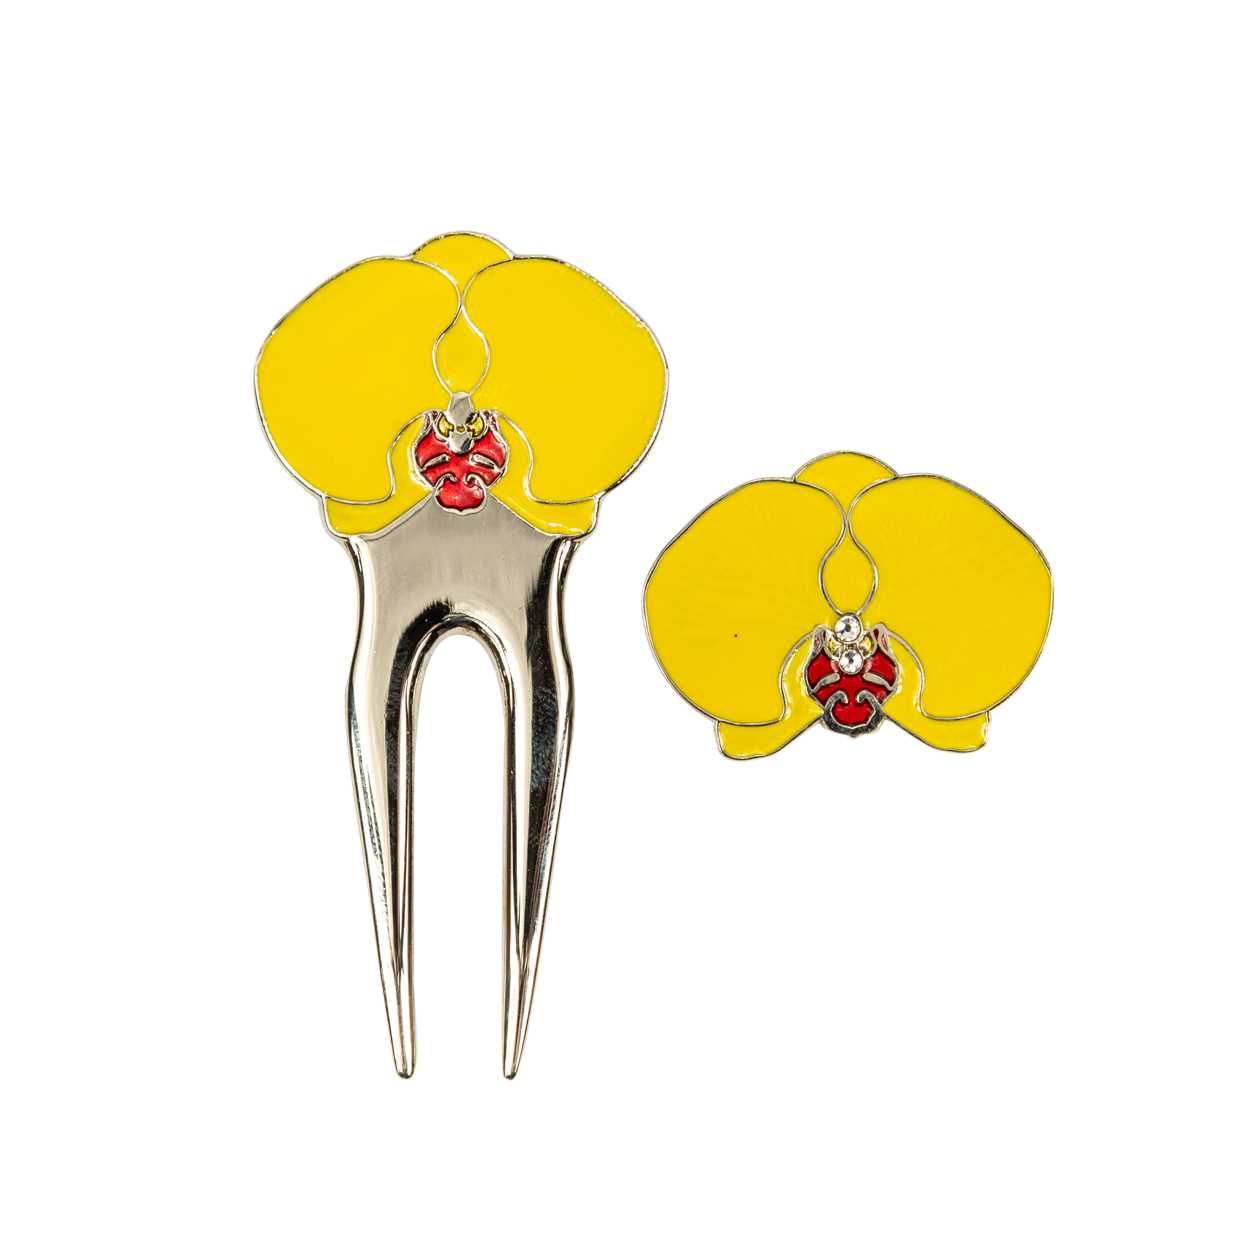 248. Orchid Yellow Divot Tool & Ball Marker Set